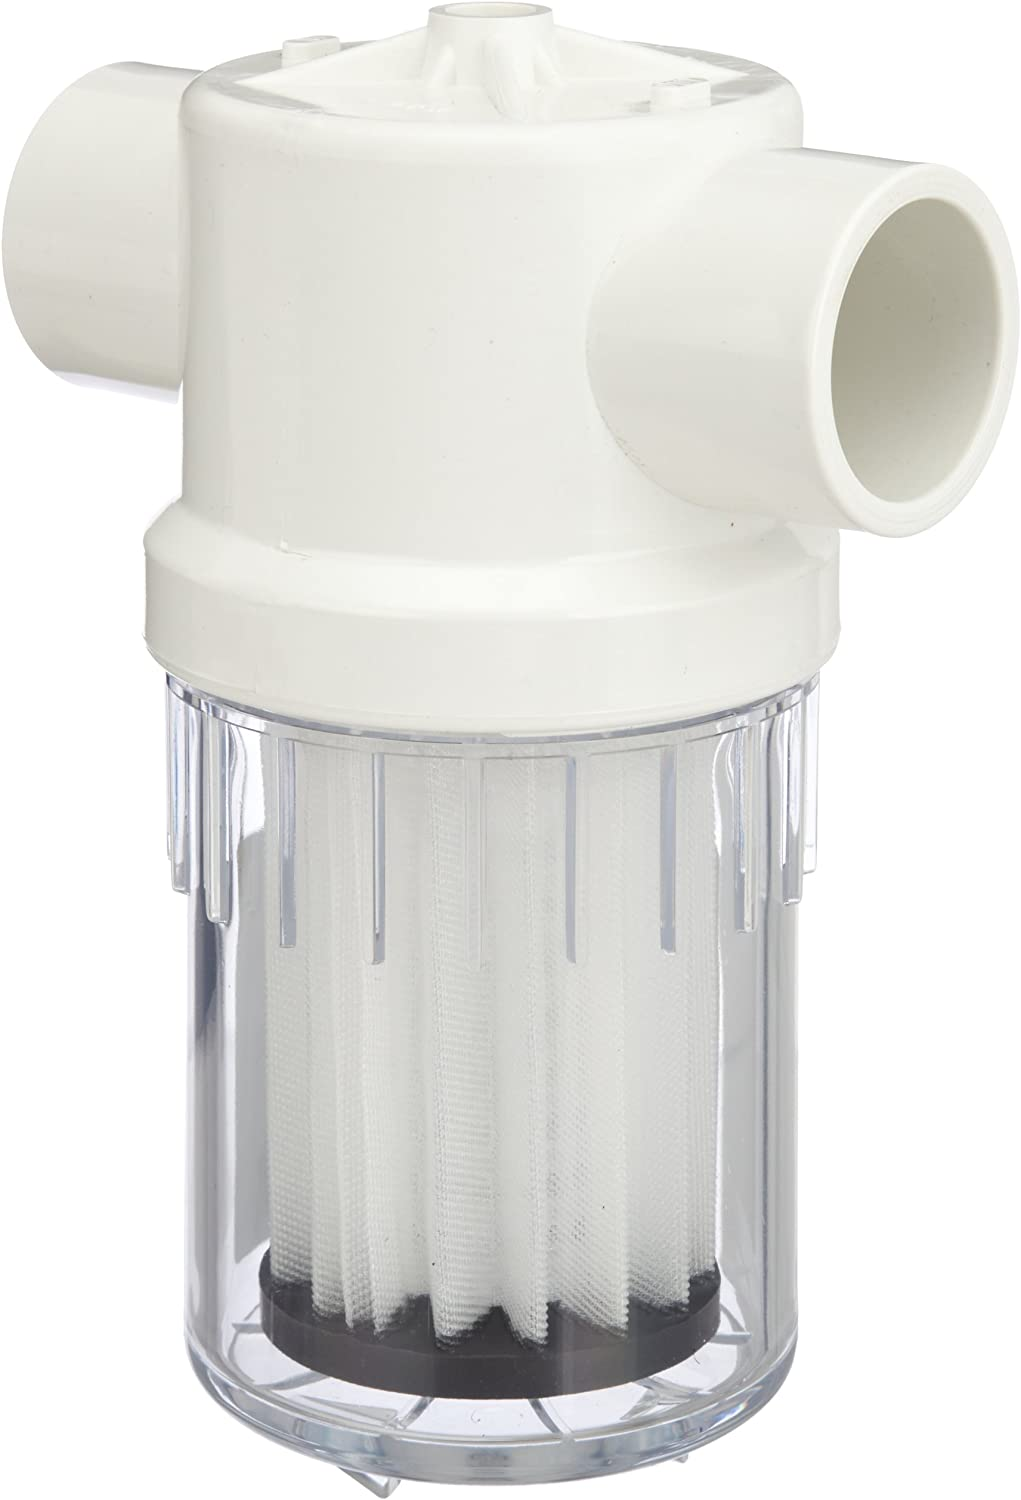 Zodiac 3456 Jandy Energy Filter Complete without Gauge or Hole